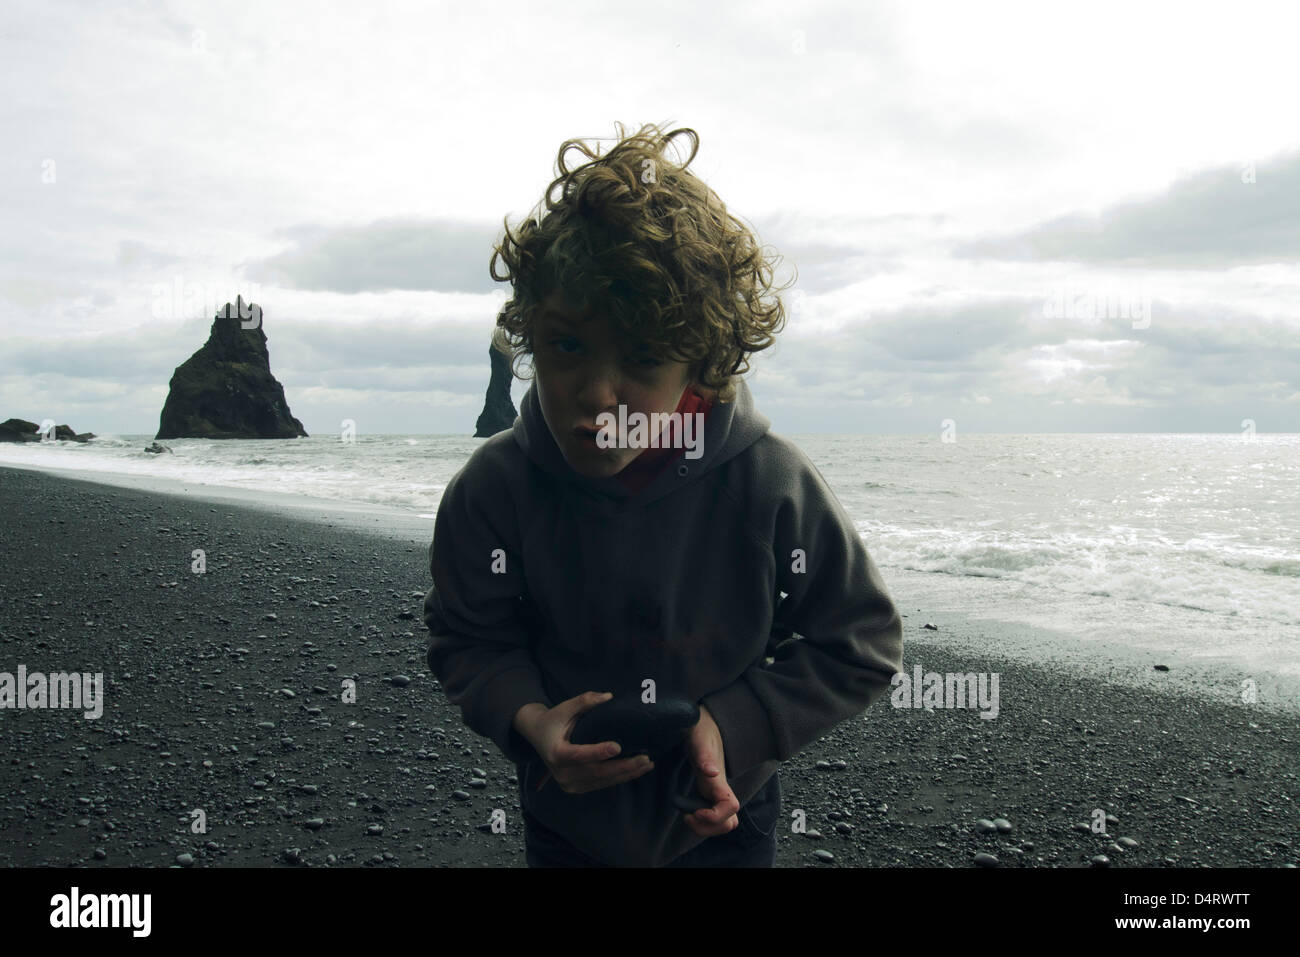 Grimacing boy on a beach iceland - Stock Image